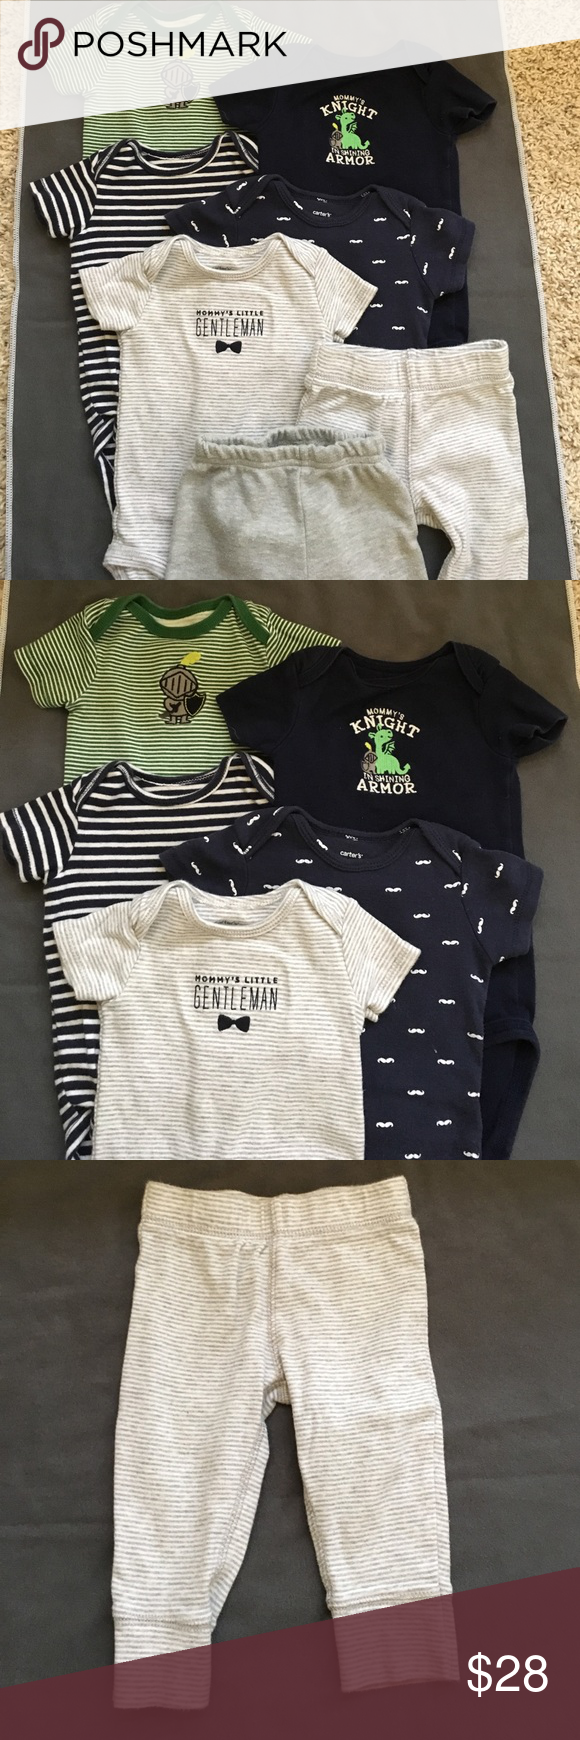 5 onsies and 2 pants 5 onsies in excellent condition and 2 pairs of pant. Onsies are all size 6M. Gray and white striped pants are 9M but fit like 6M and are also in excellent condition. Grey pants with blue ⭐️ on the bum are size 6-9M and look more worn but they still have a lot of life in them! Carter's Other